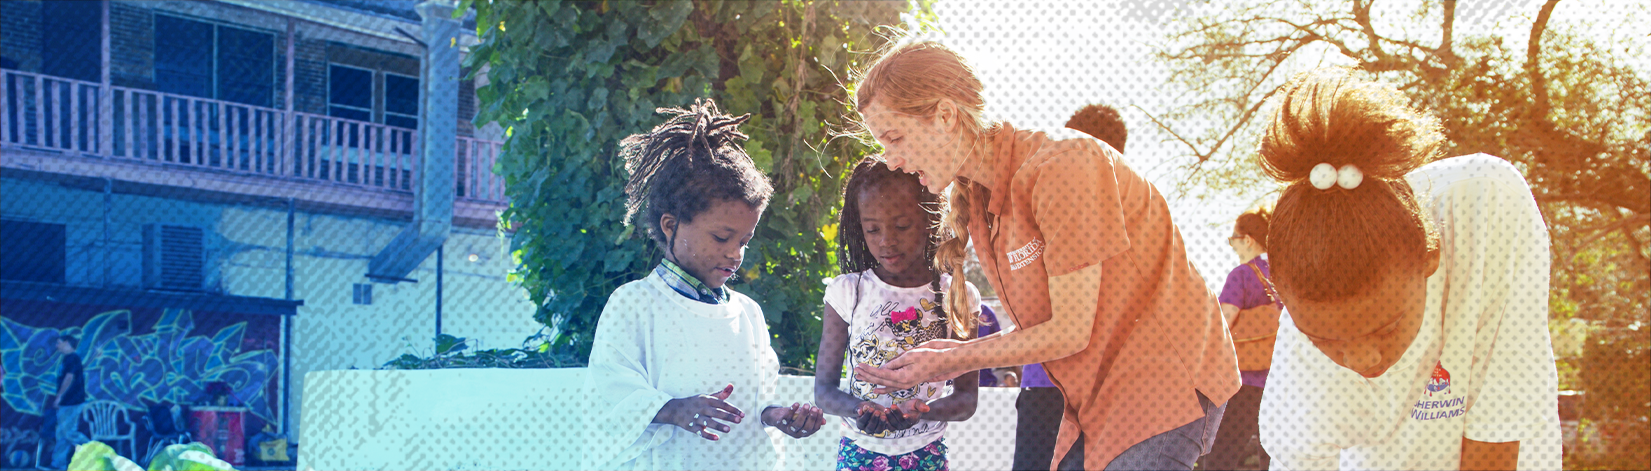 a UF/IFAS CALS student teaches three small young girls about planting seeds near a raised flower bed